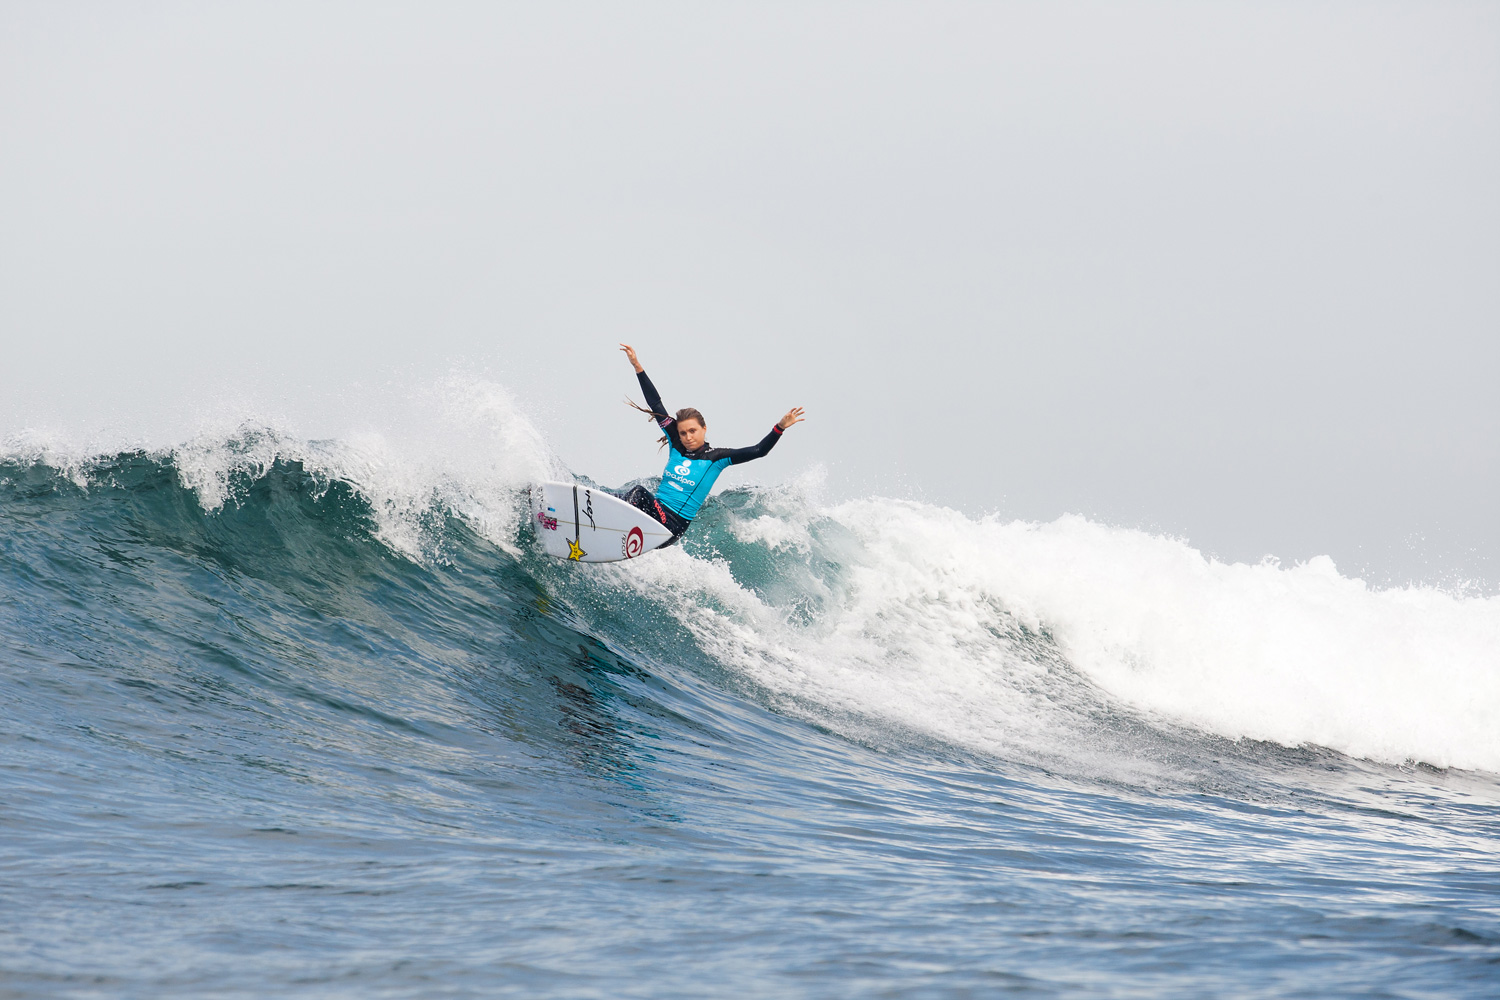 Alana Blanchard placed third in her first round heat on April 16, 2014 in Bells Beach, Australia.